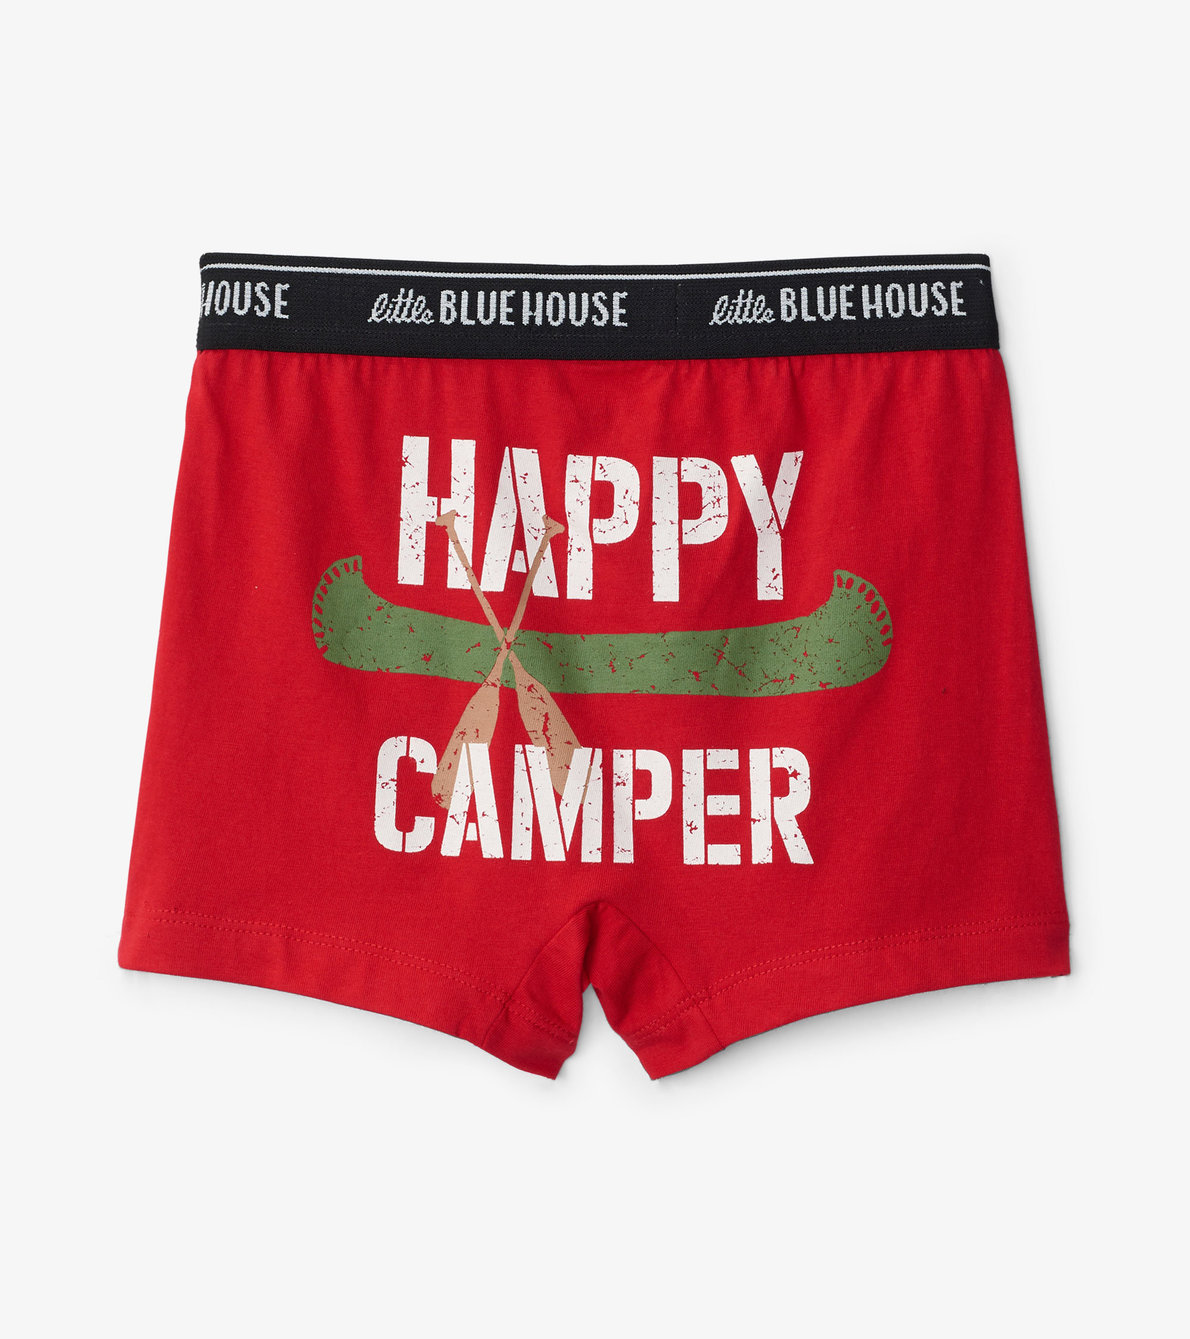 View larger image of Happy Camper Boy's Boxers Briefs